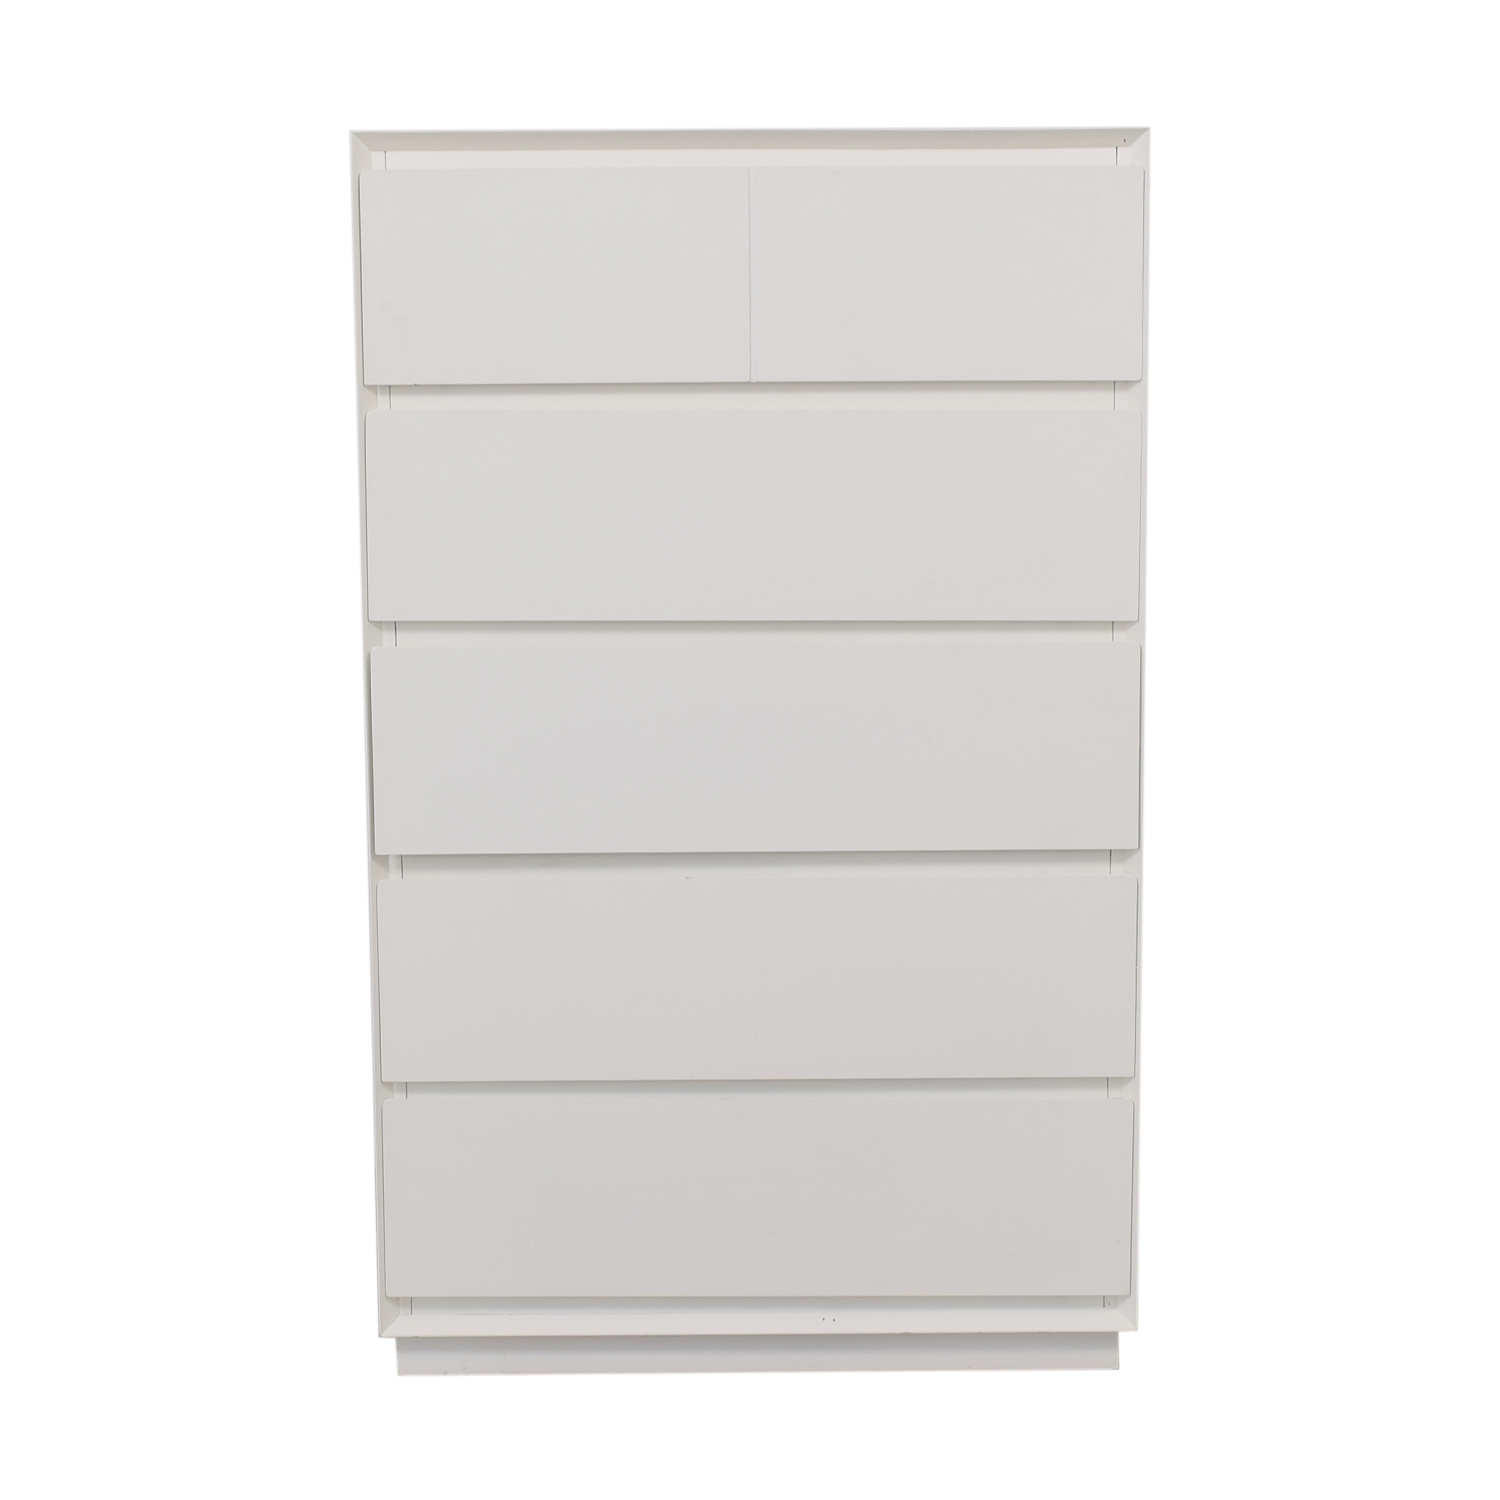 shop Furniture of America Leeroy Chest of Drawers Furniture of America Dressers